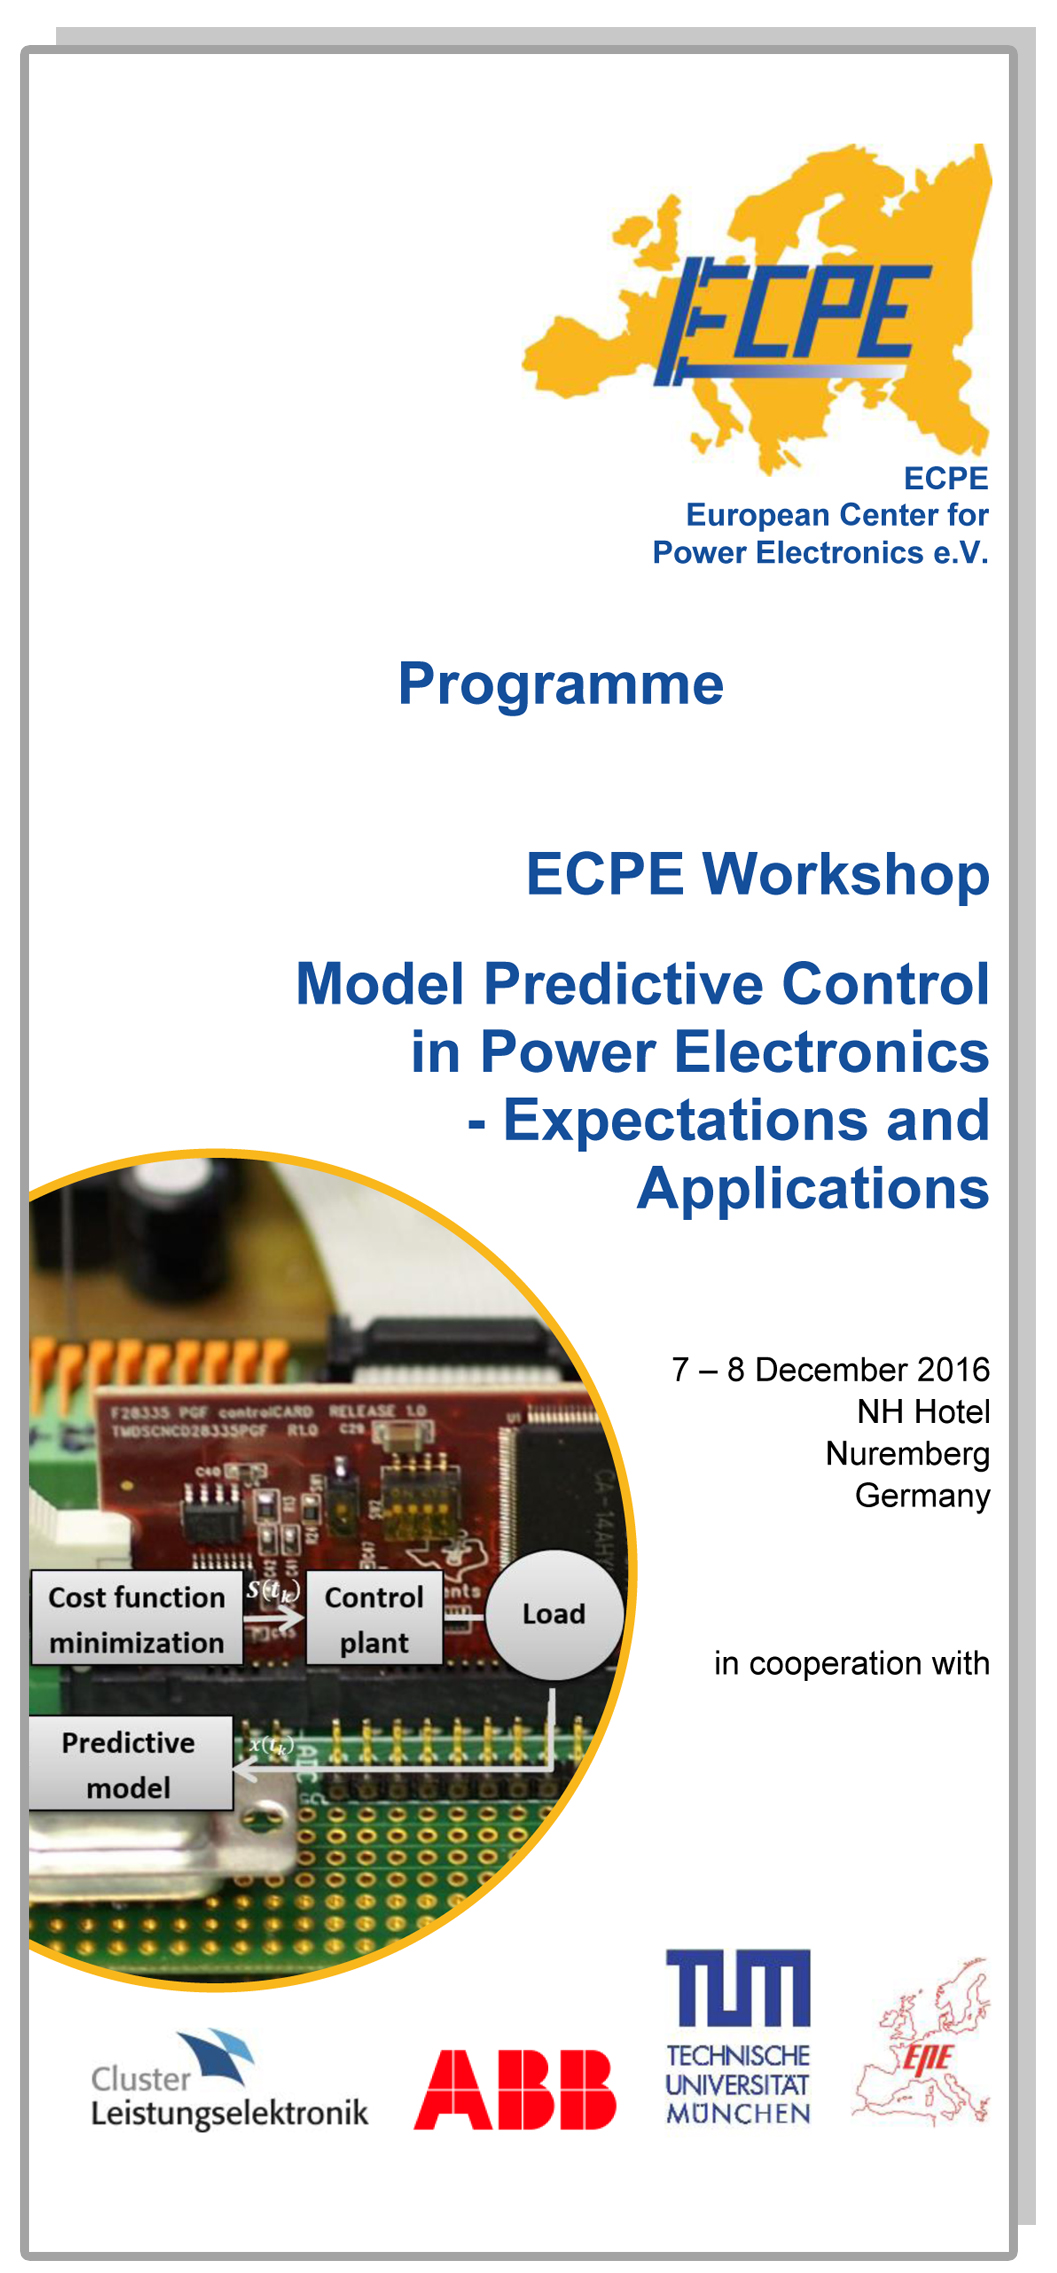 ECPE Workshop: Model Predictive Control in Power Electronics